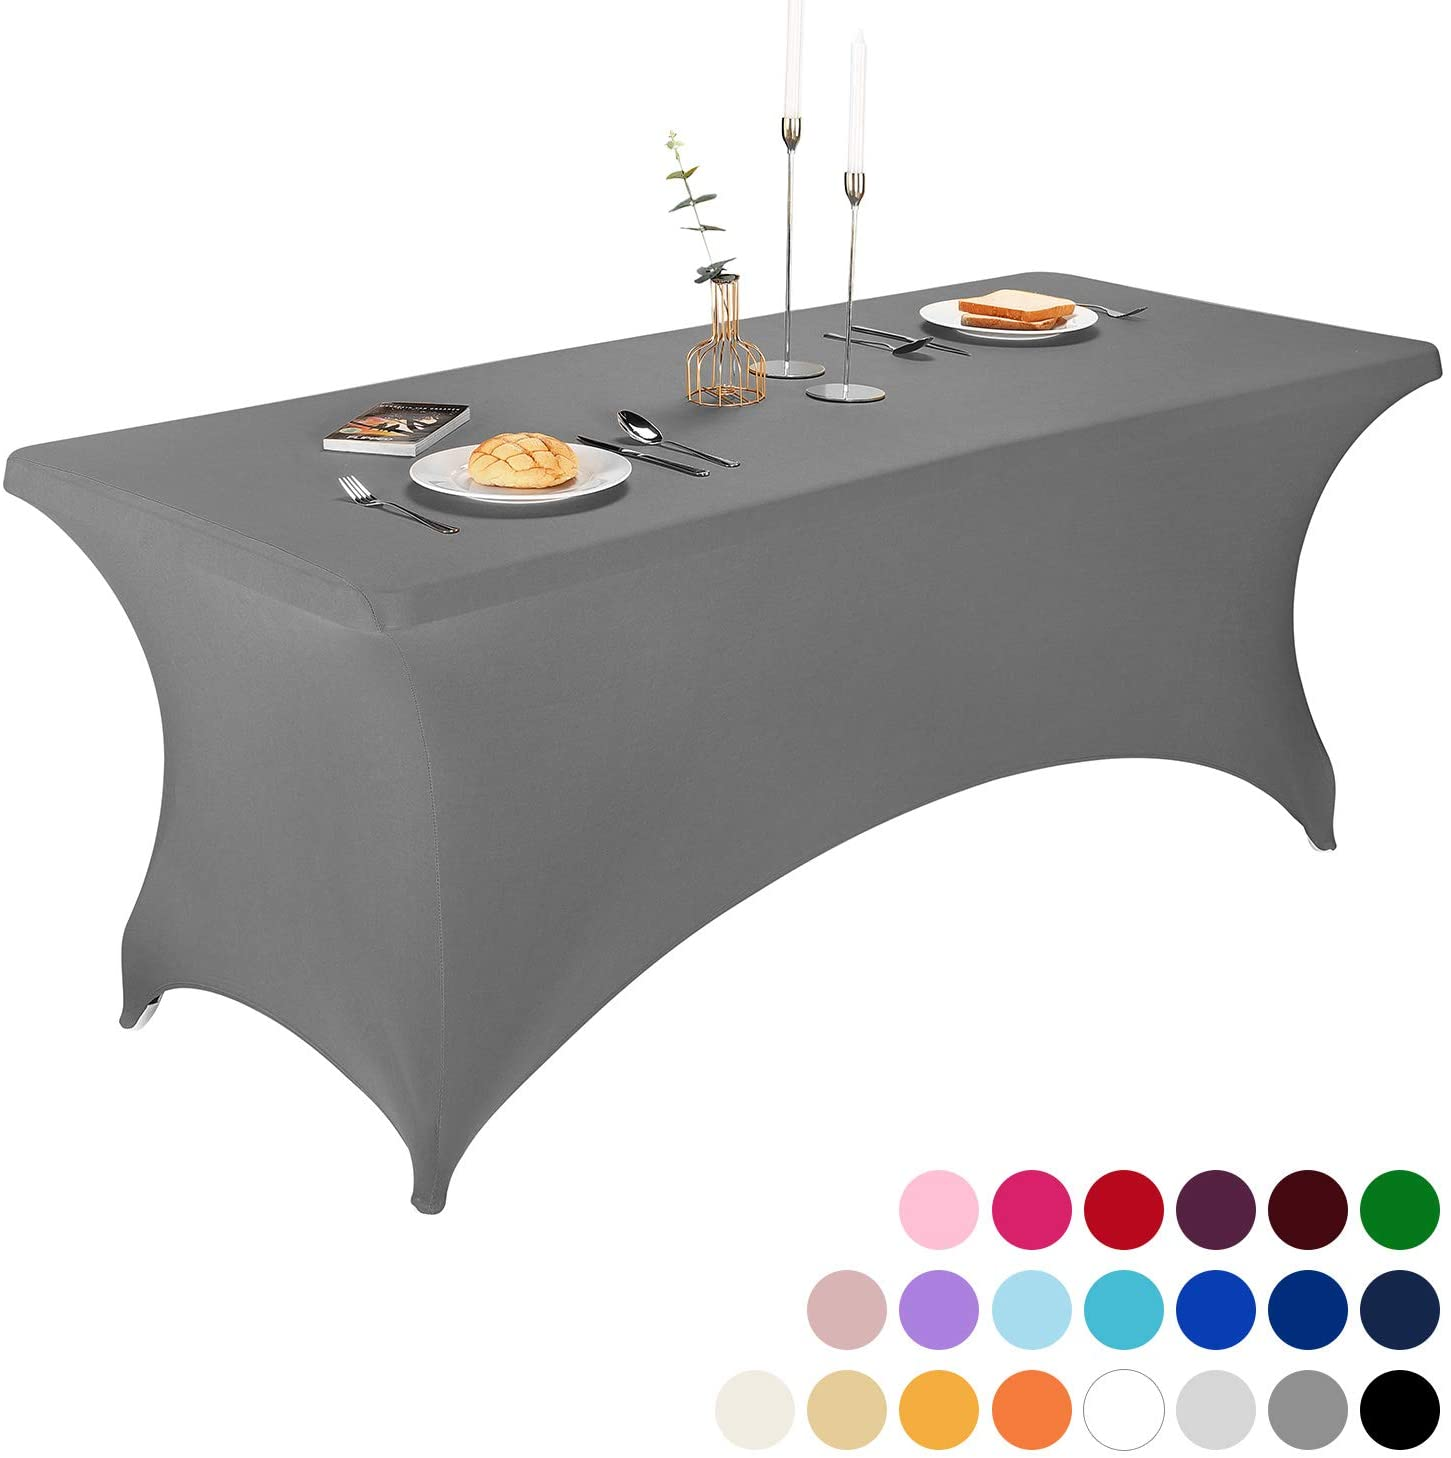 FELIZEST Spandex Table Covers, 6 ft/4 ft Spandex Table Cloth, Rectangular Stretch Table Cover for Folding Table (6ft, Gray)